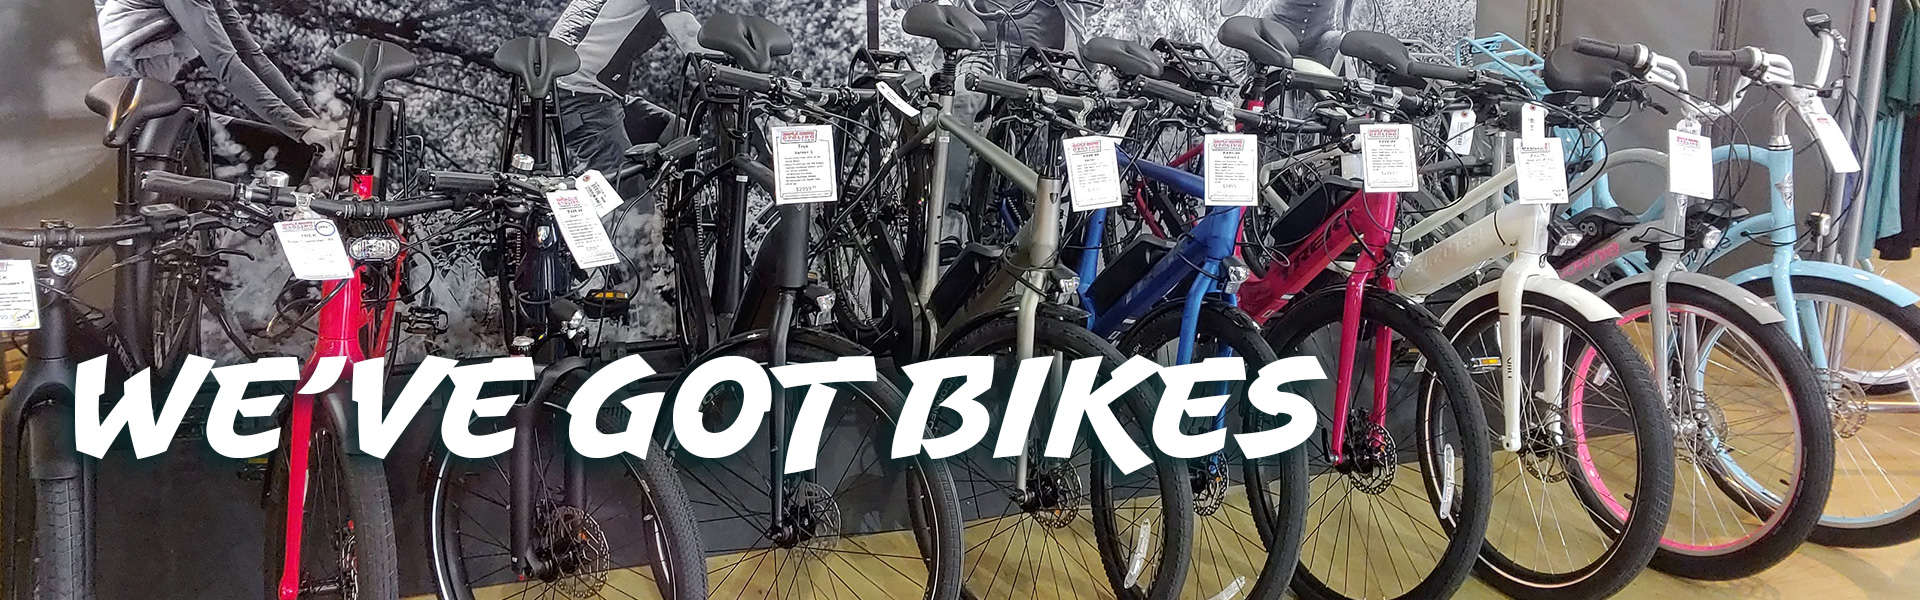 We've Got E-Bikes